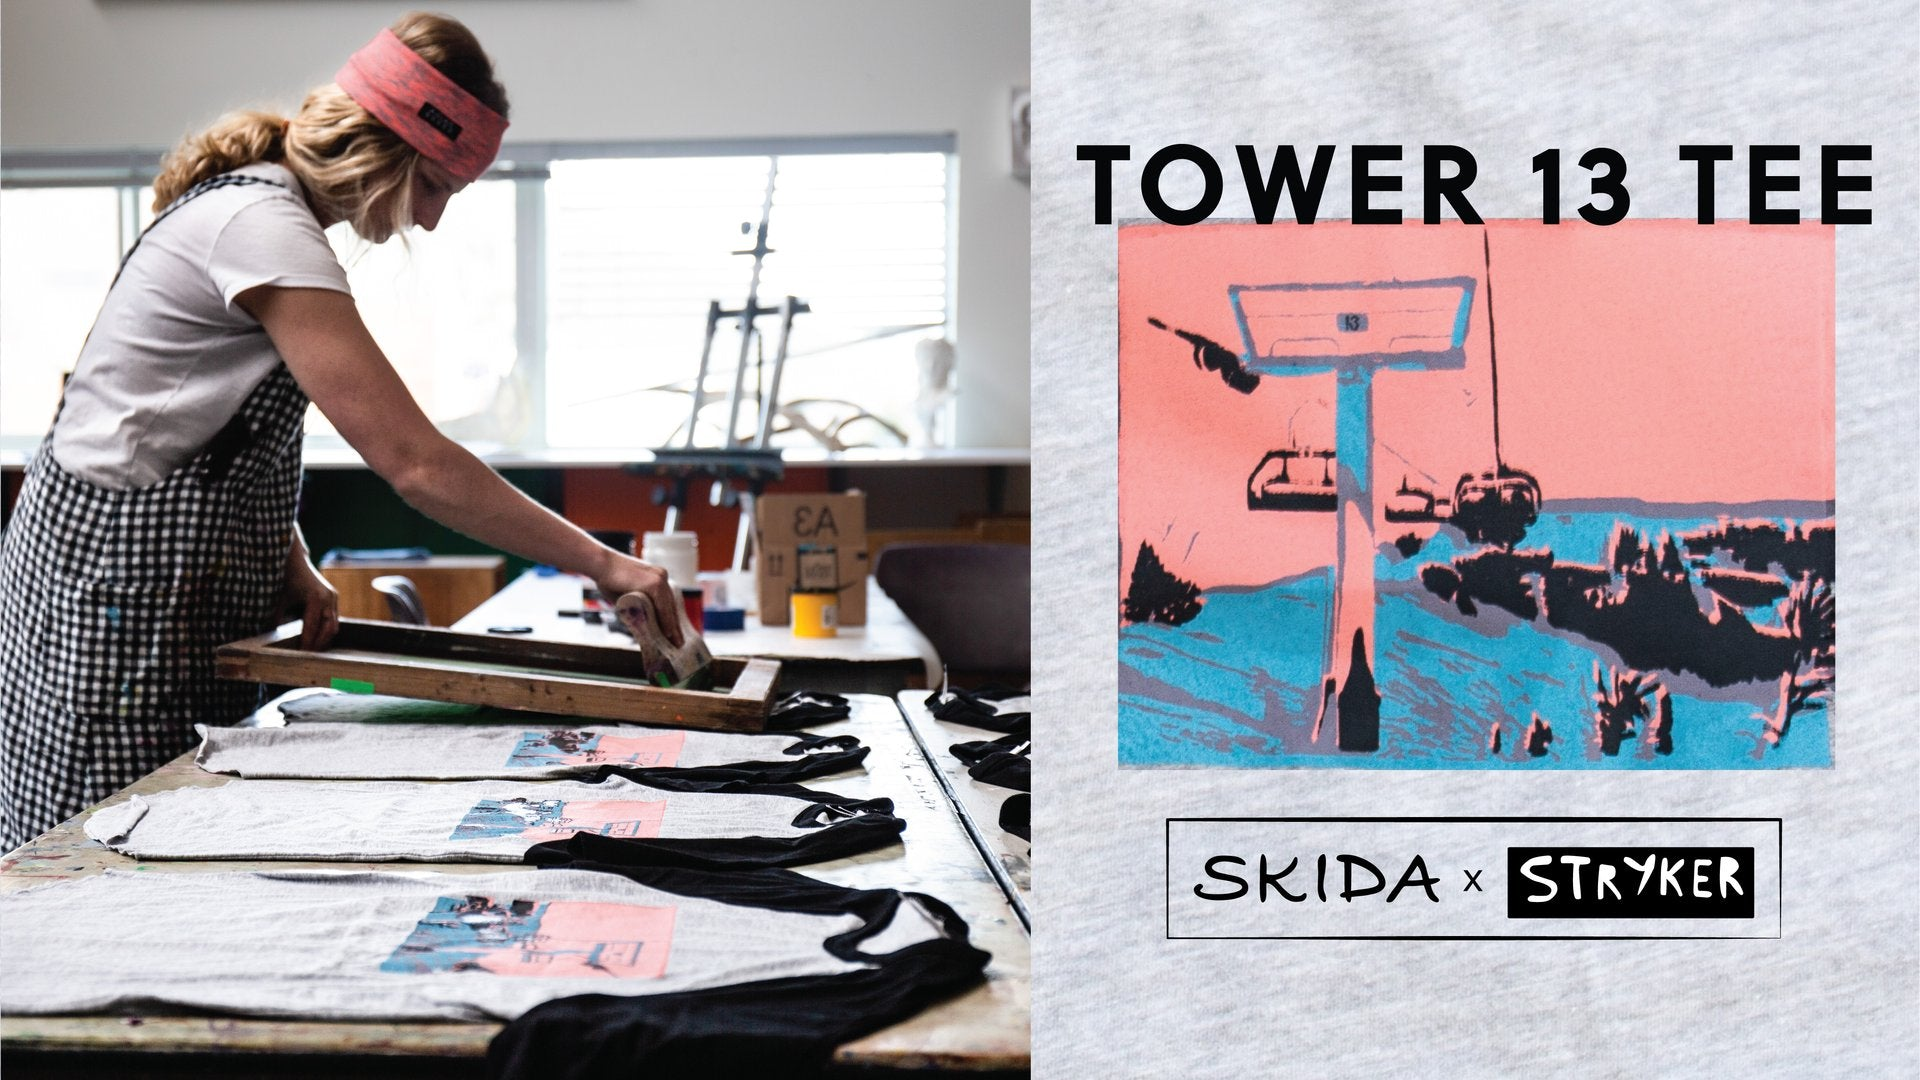 Shop our new handprinted Tower 13 Tee!